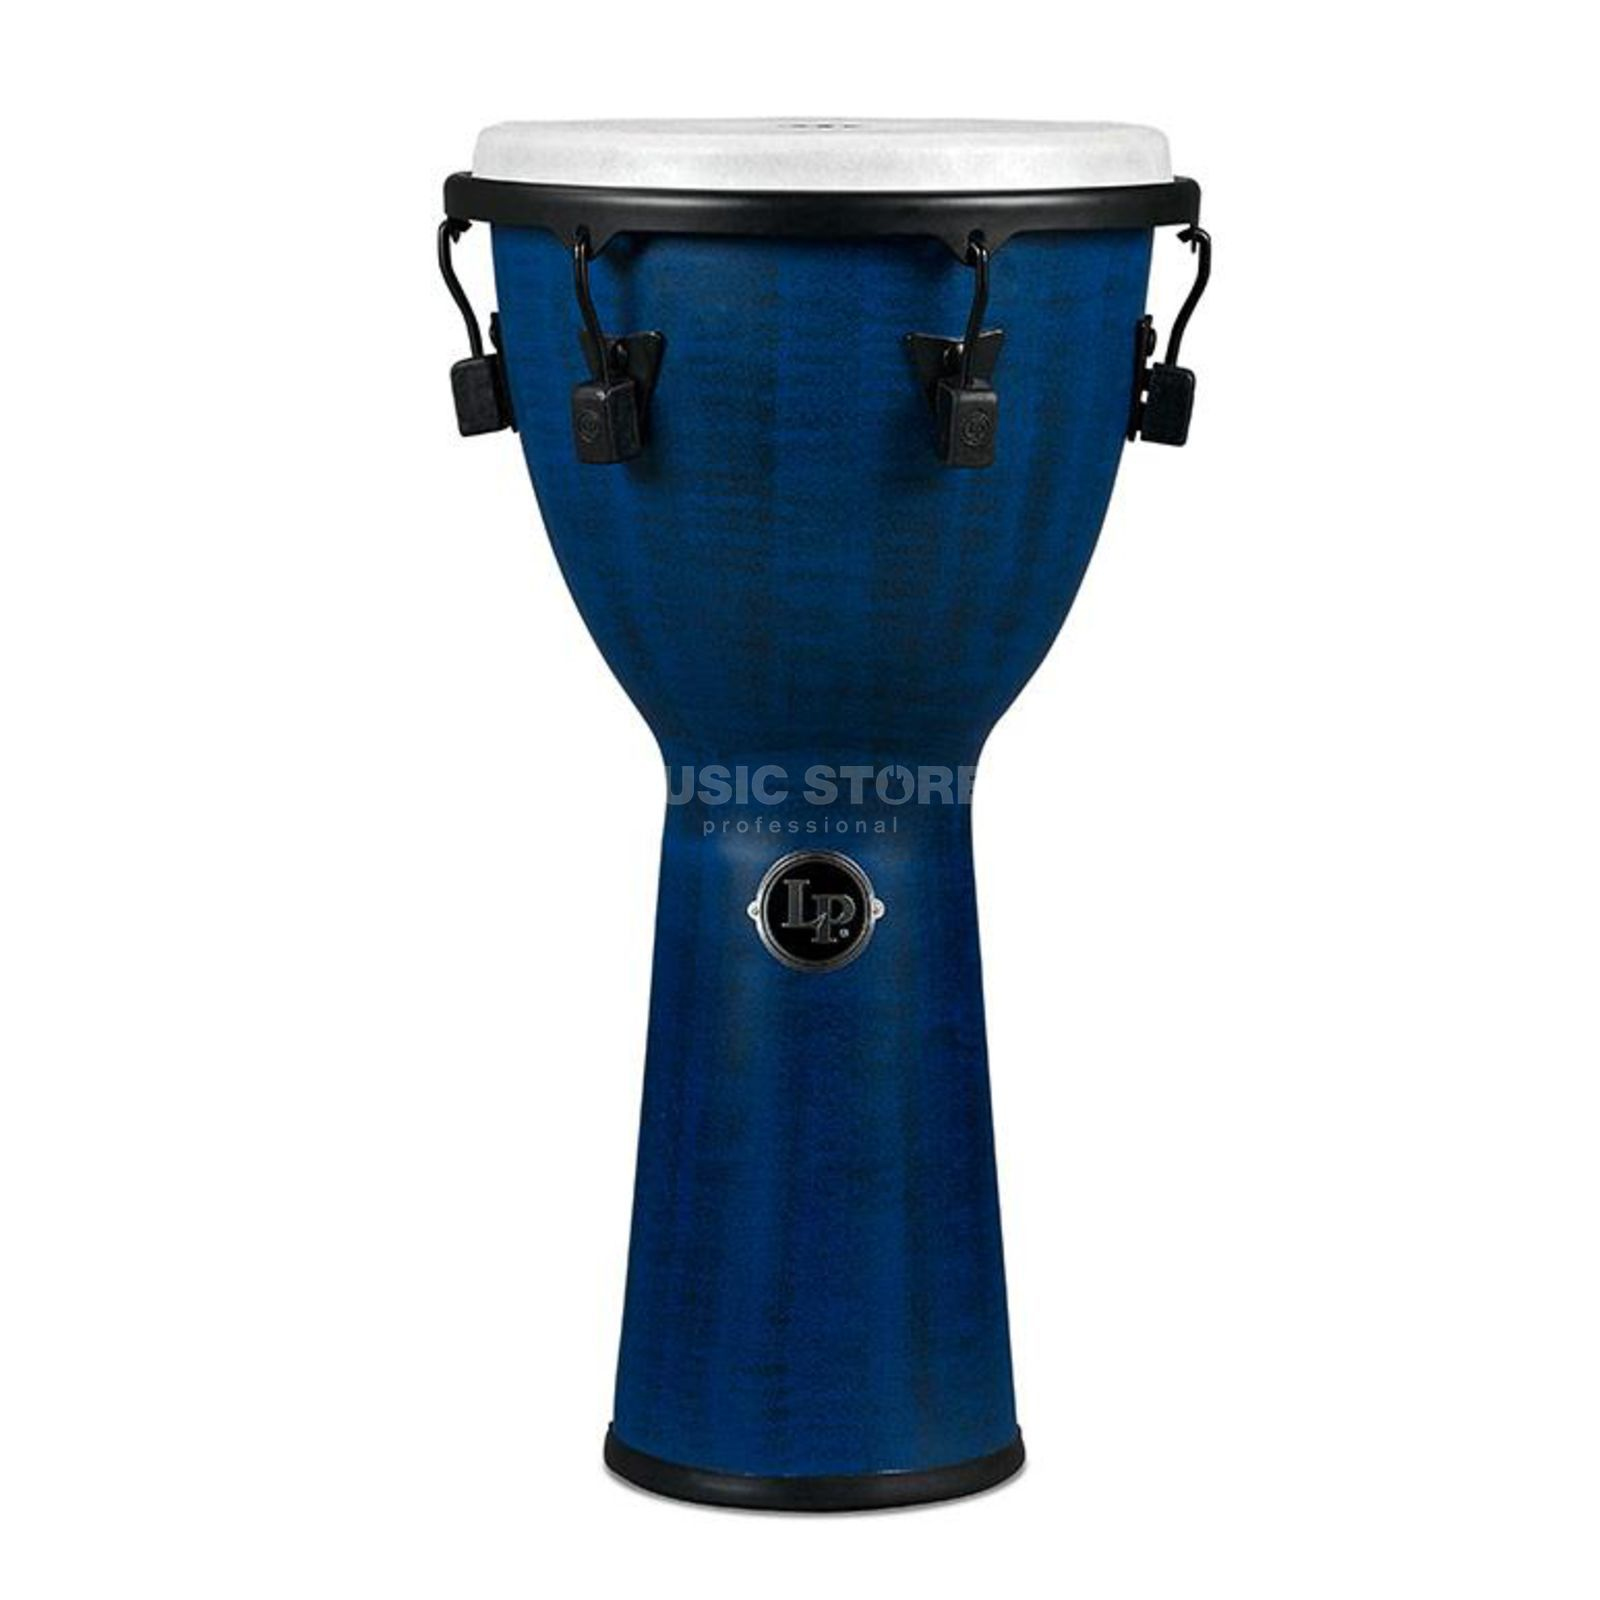 "Latin Percussion FX Mech Djembe LP726B, 11"", Blue Product Image"